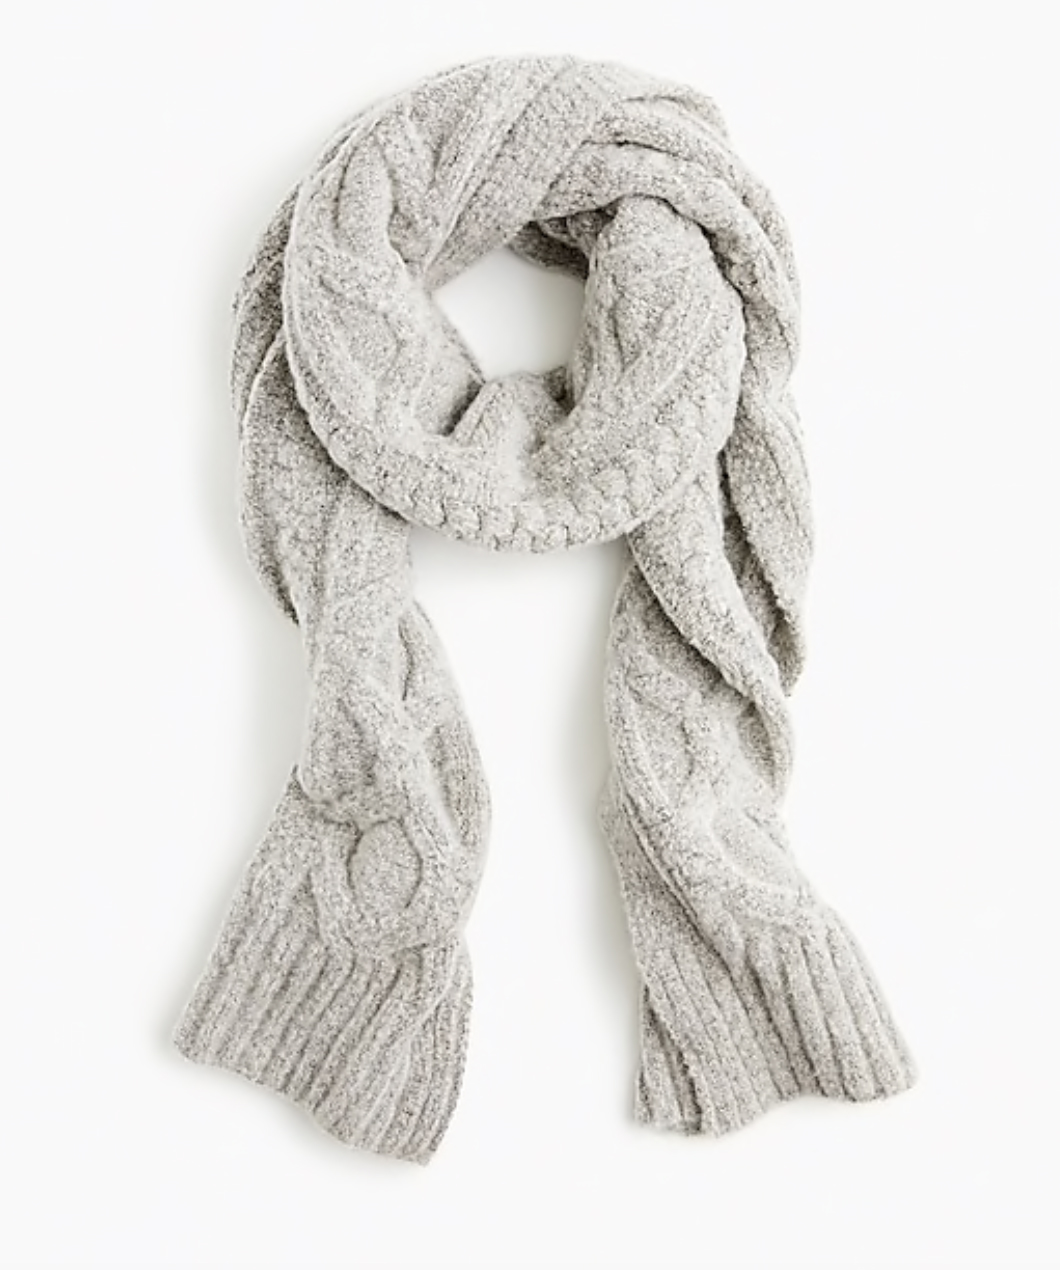 J.Crew: Oversized Cable-Knit Scarf